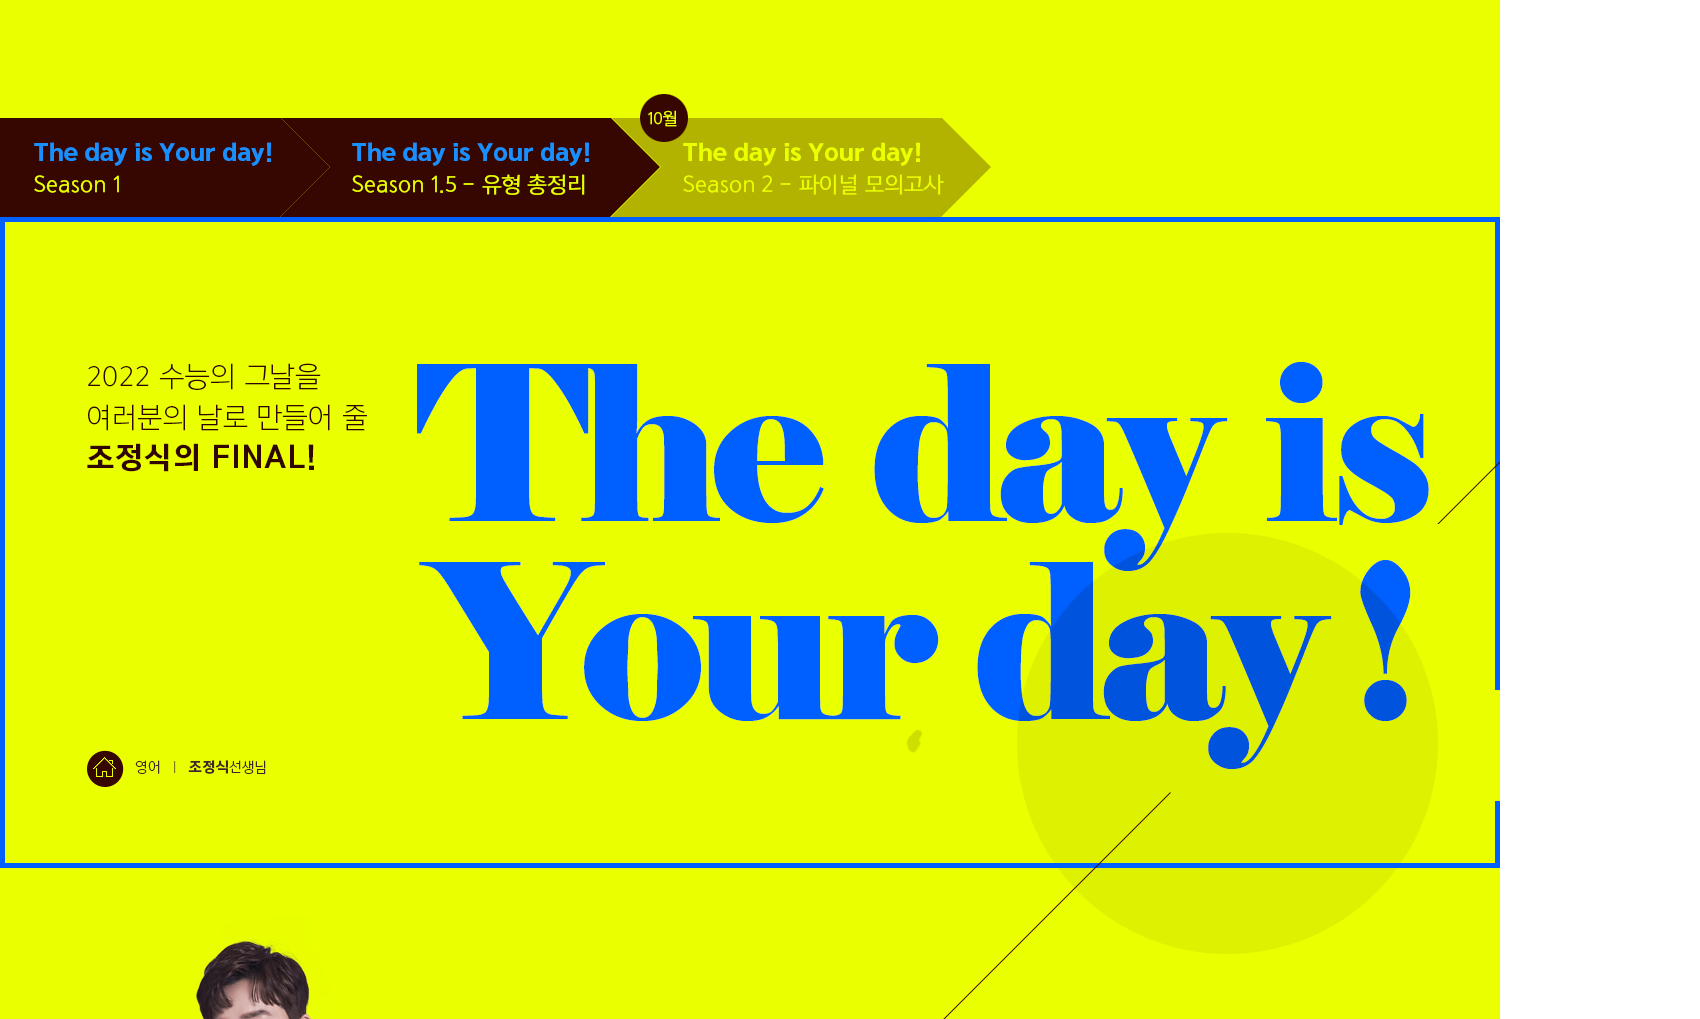 The day is Your day! Season 1 9평 대비 모의고사